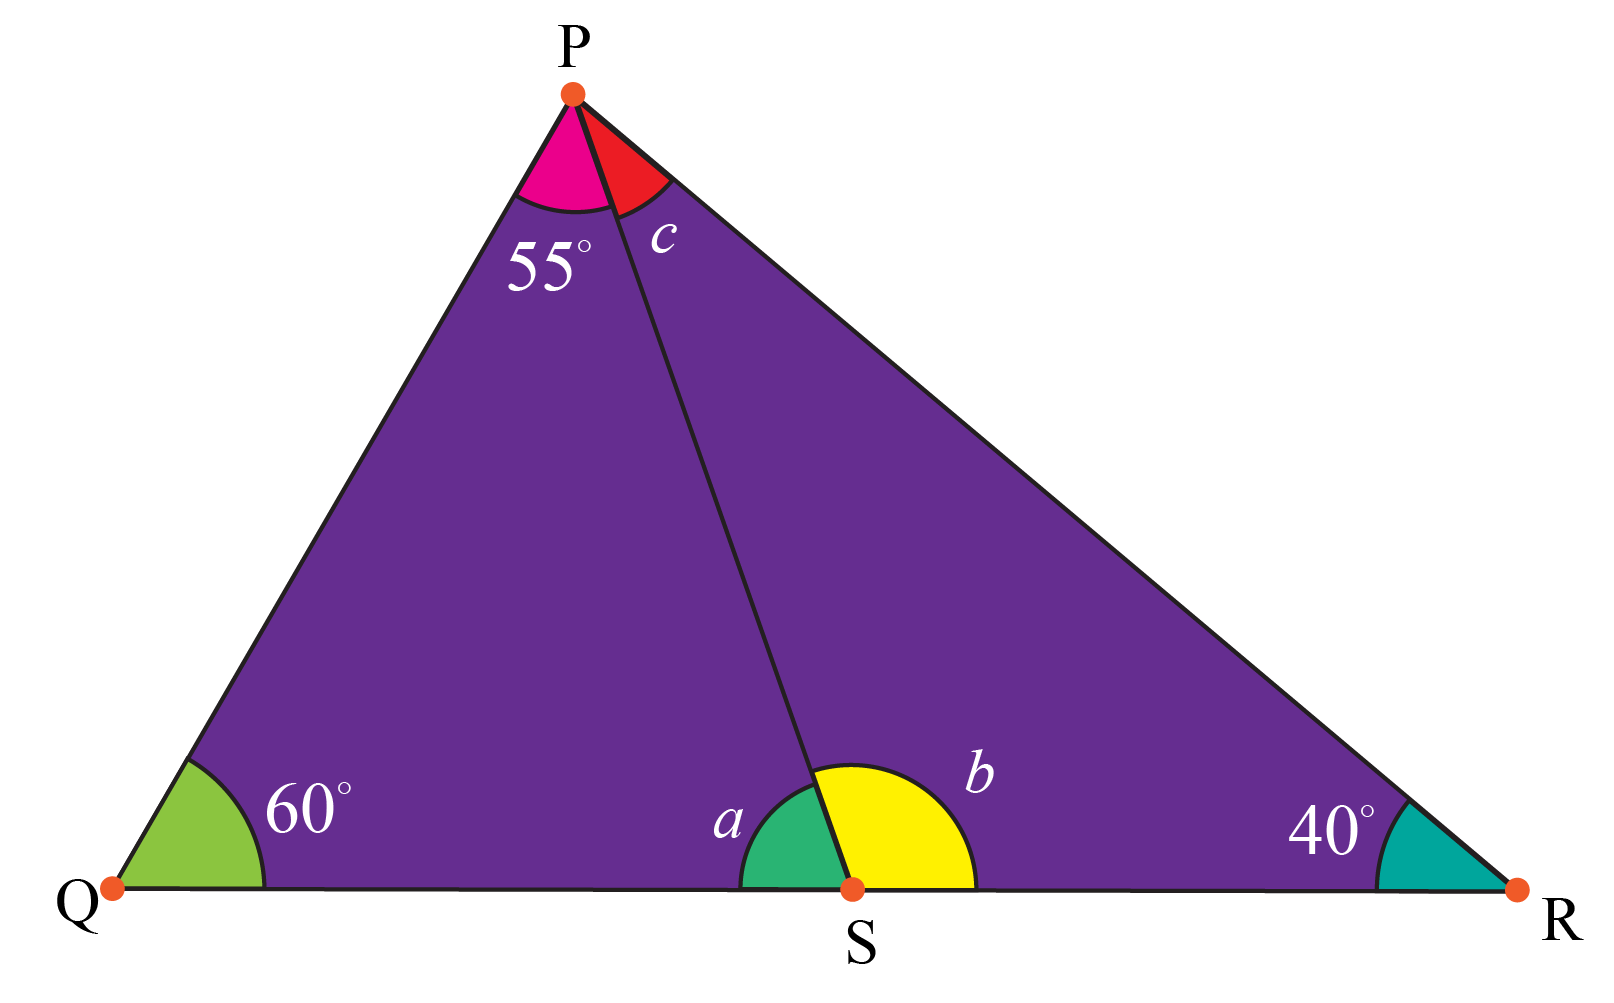 Triangle angle sum theorem example